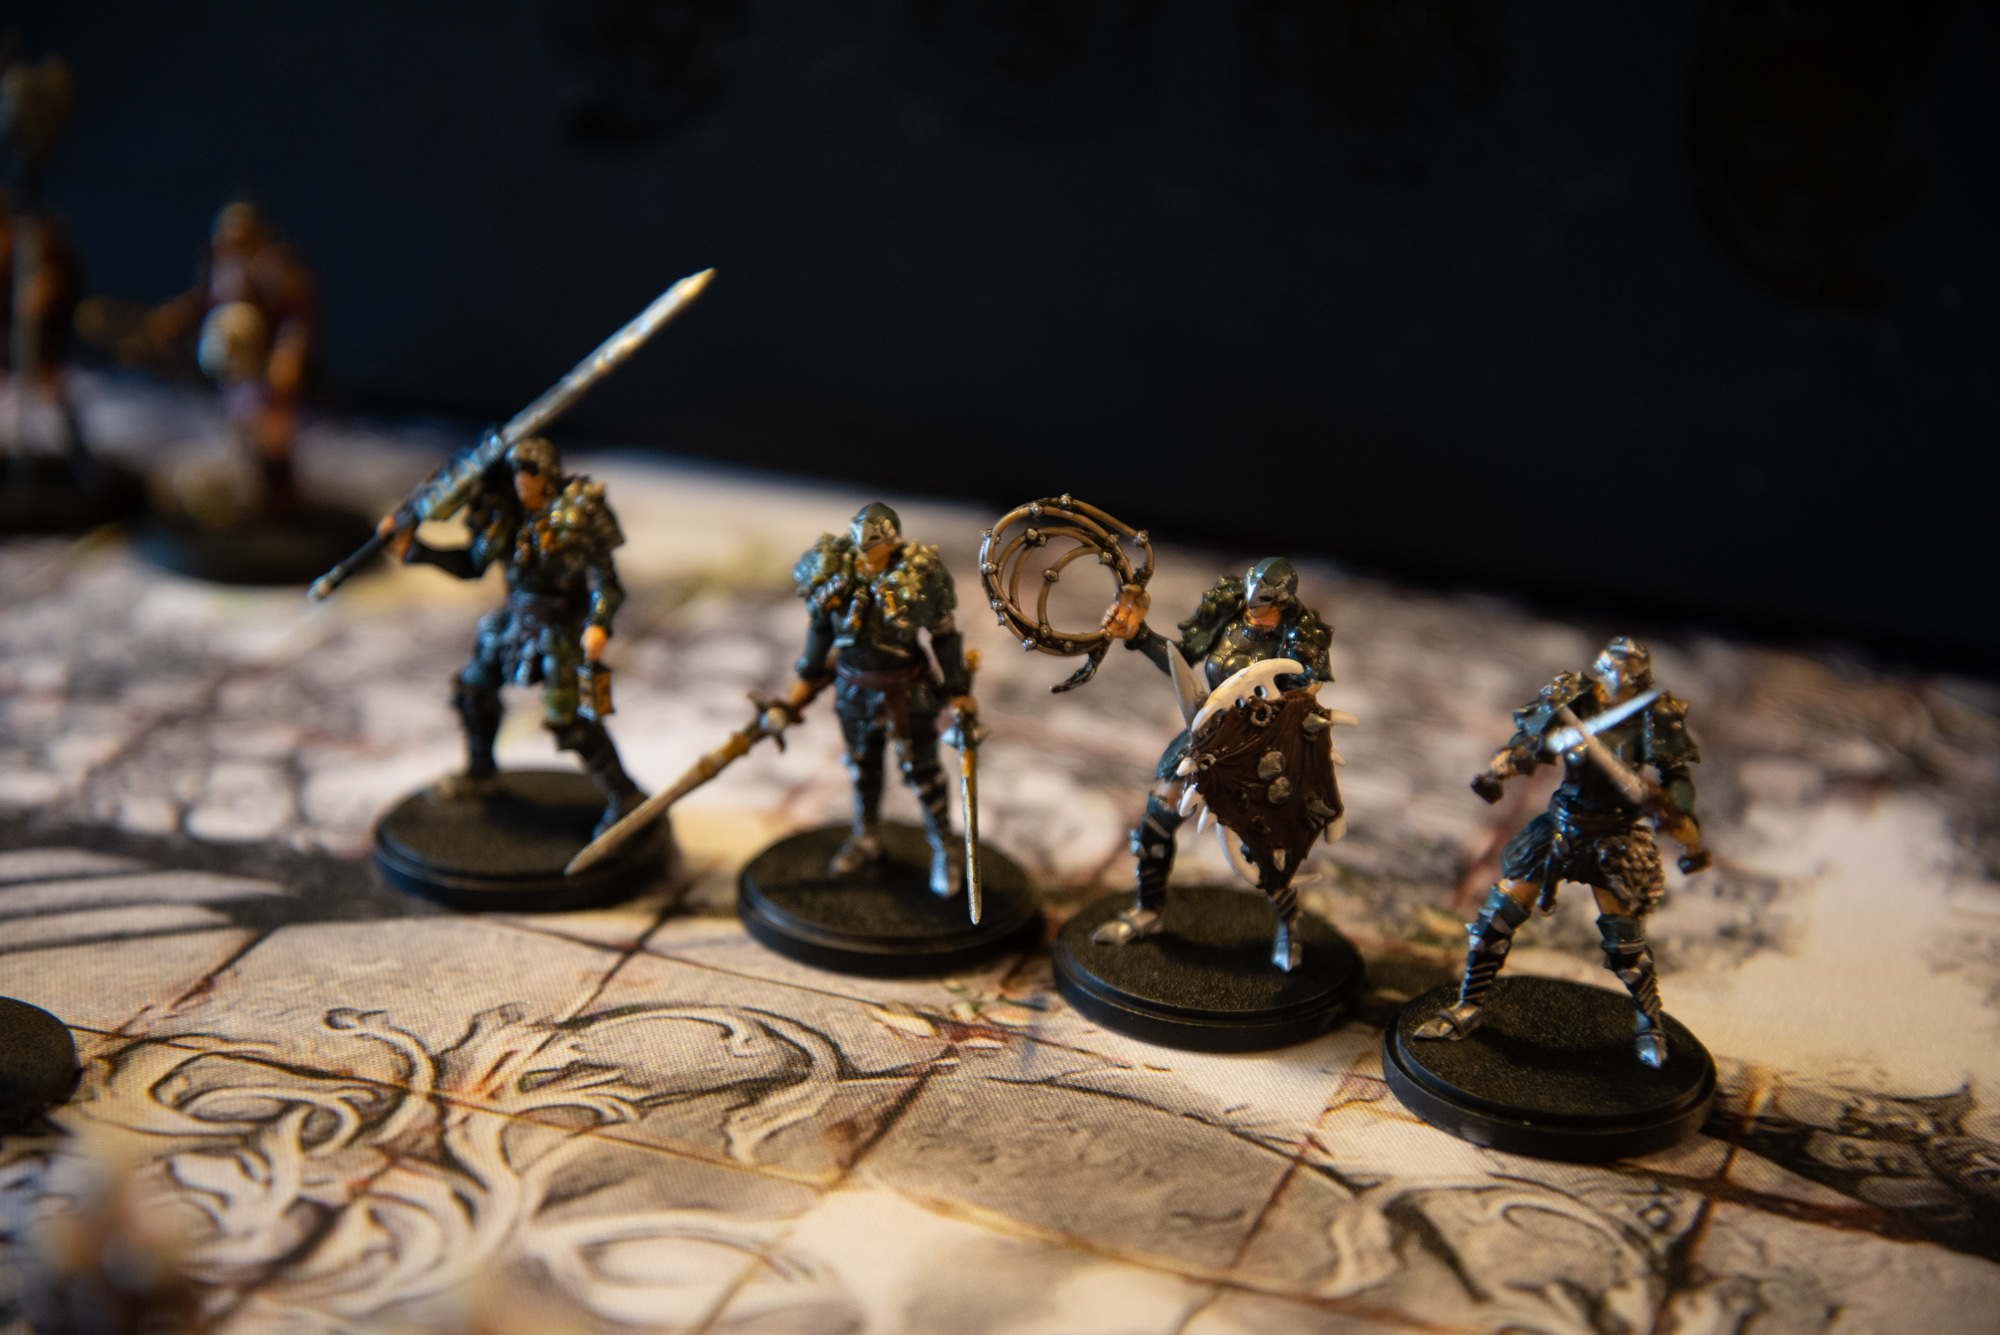 Assembled and Painted Kingdom Death Monster Set